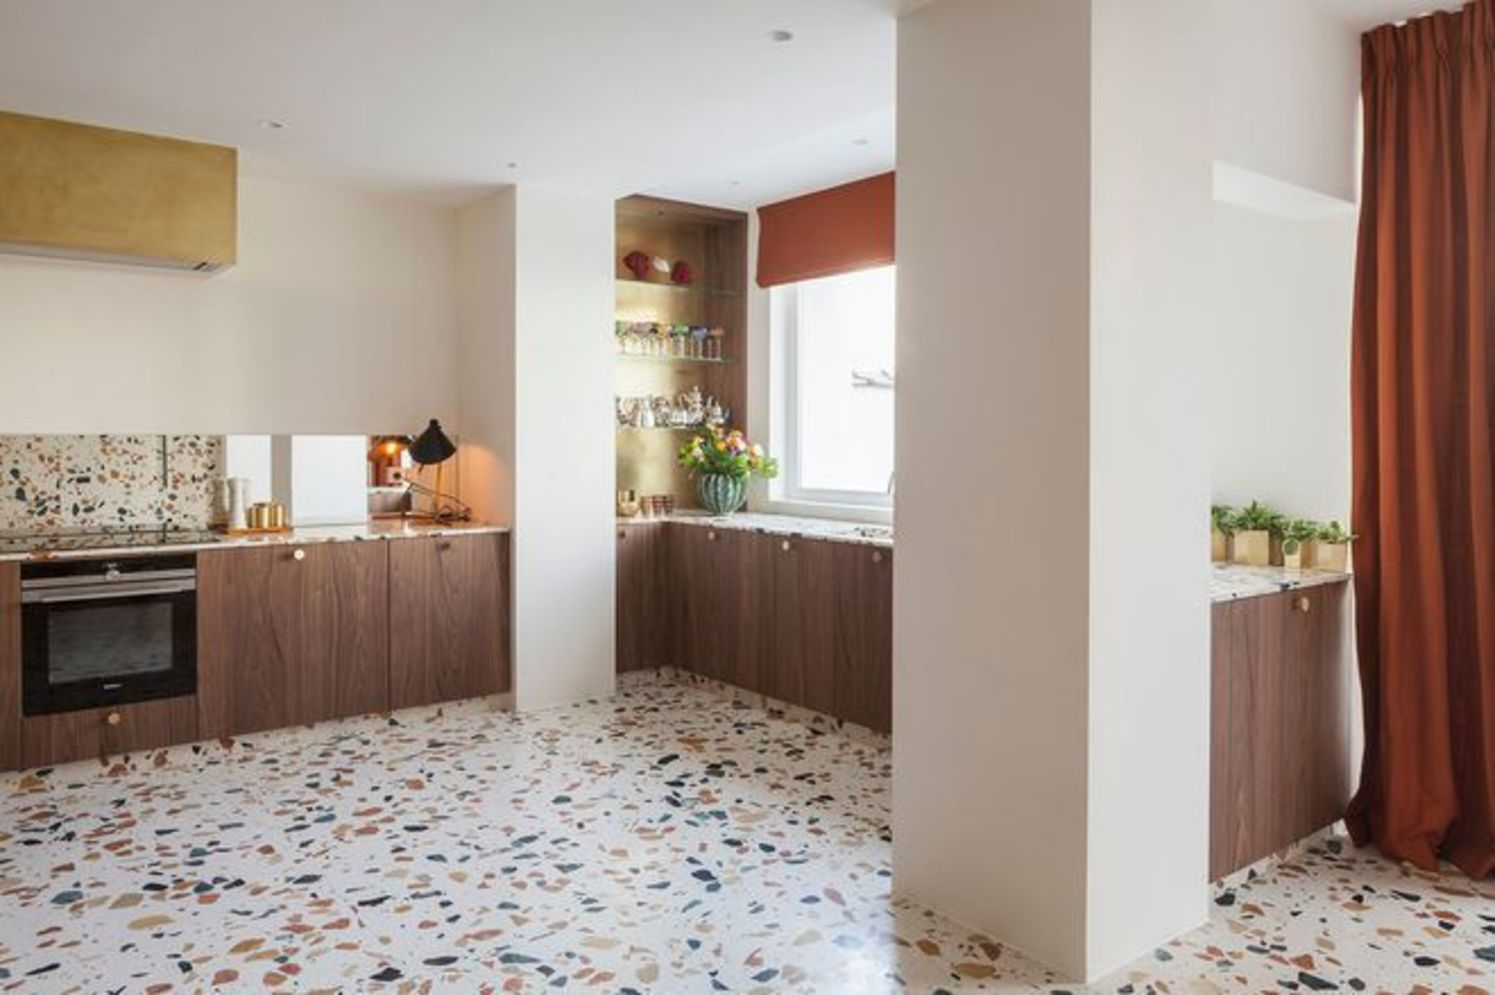 Artsy terrazzo flooring bringing back the classy vintage accent combined in modern simple interior style Image 17